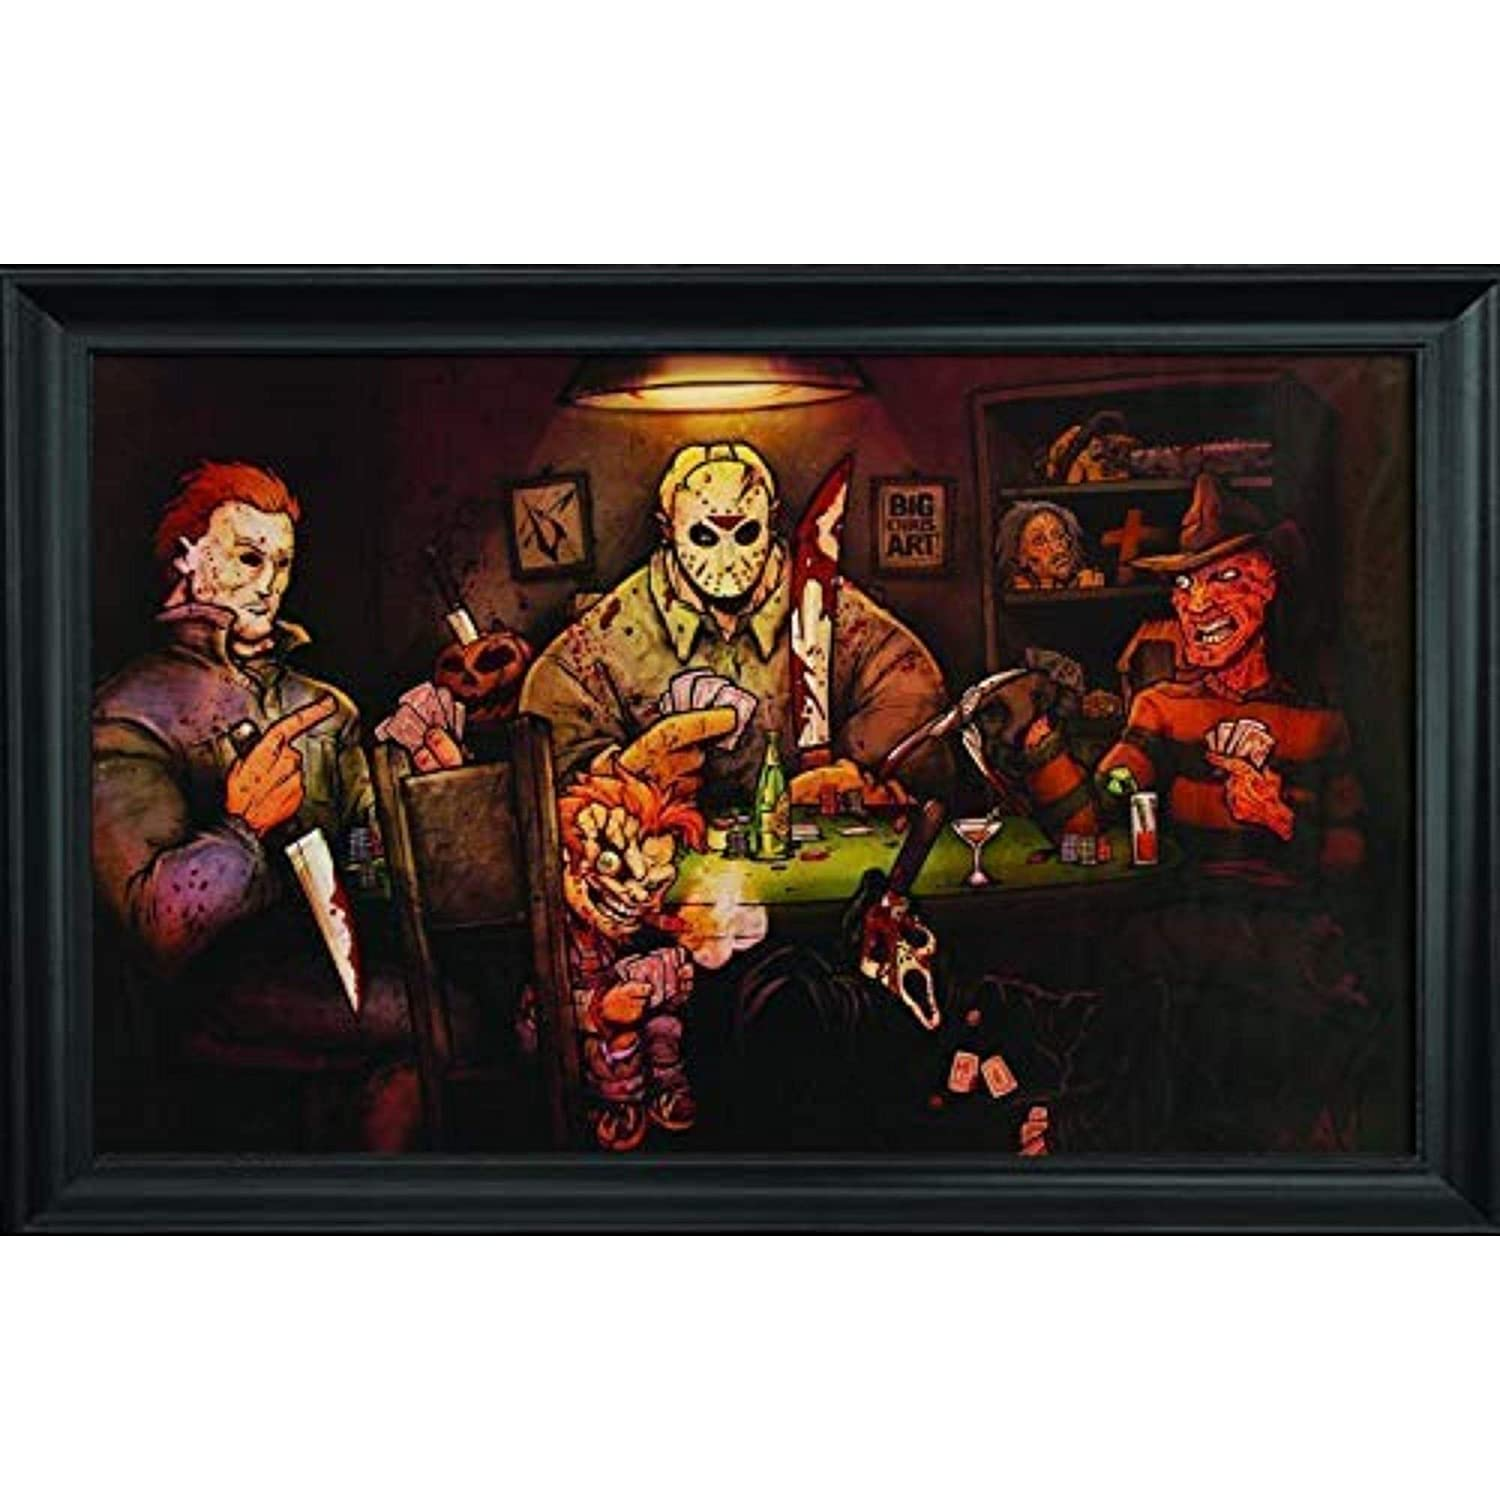 Slashers Poker Wall Art Textured Print Framed - Jason Voorhees, Freddy Krueger, Michael Myers, Chucky & Scream Poster - Scary Horror Movie Wall Art – 36x24 – Cool Unique Décor Painting by Big Chris